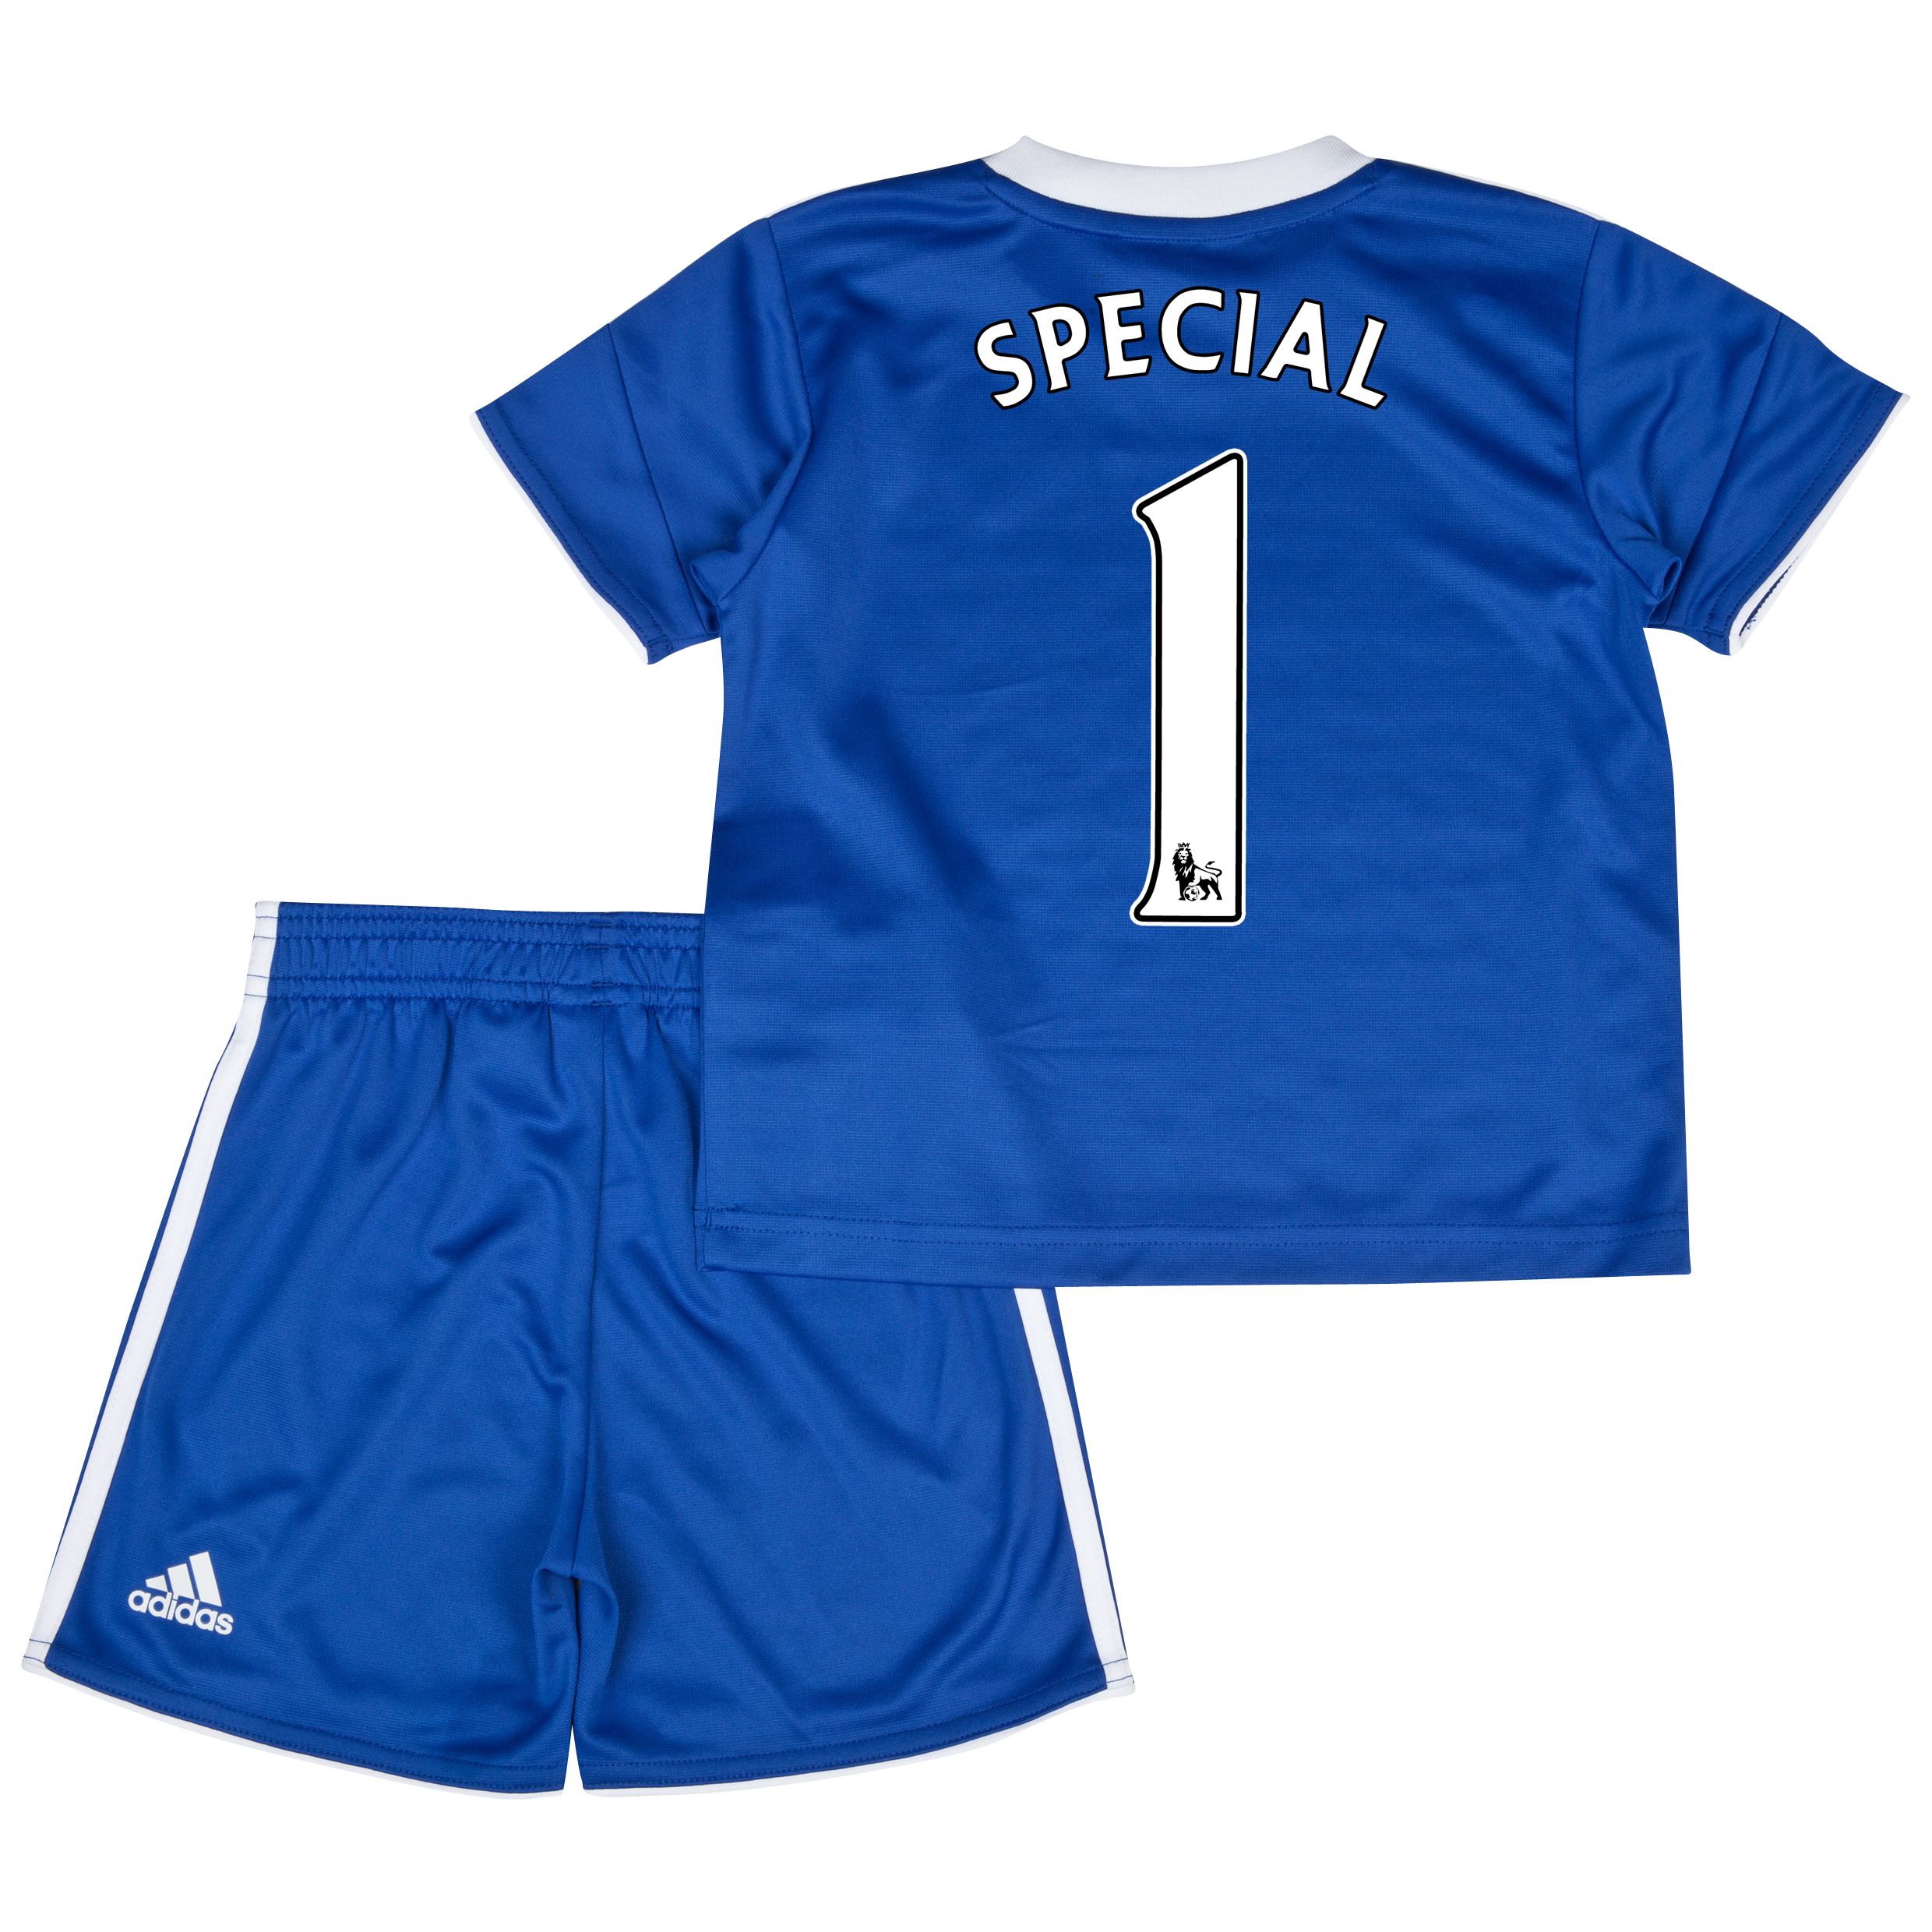 Chelsea Home Mini Kit 2013/14 with Special 1 printing